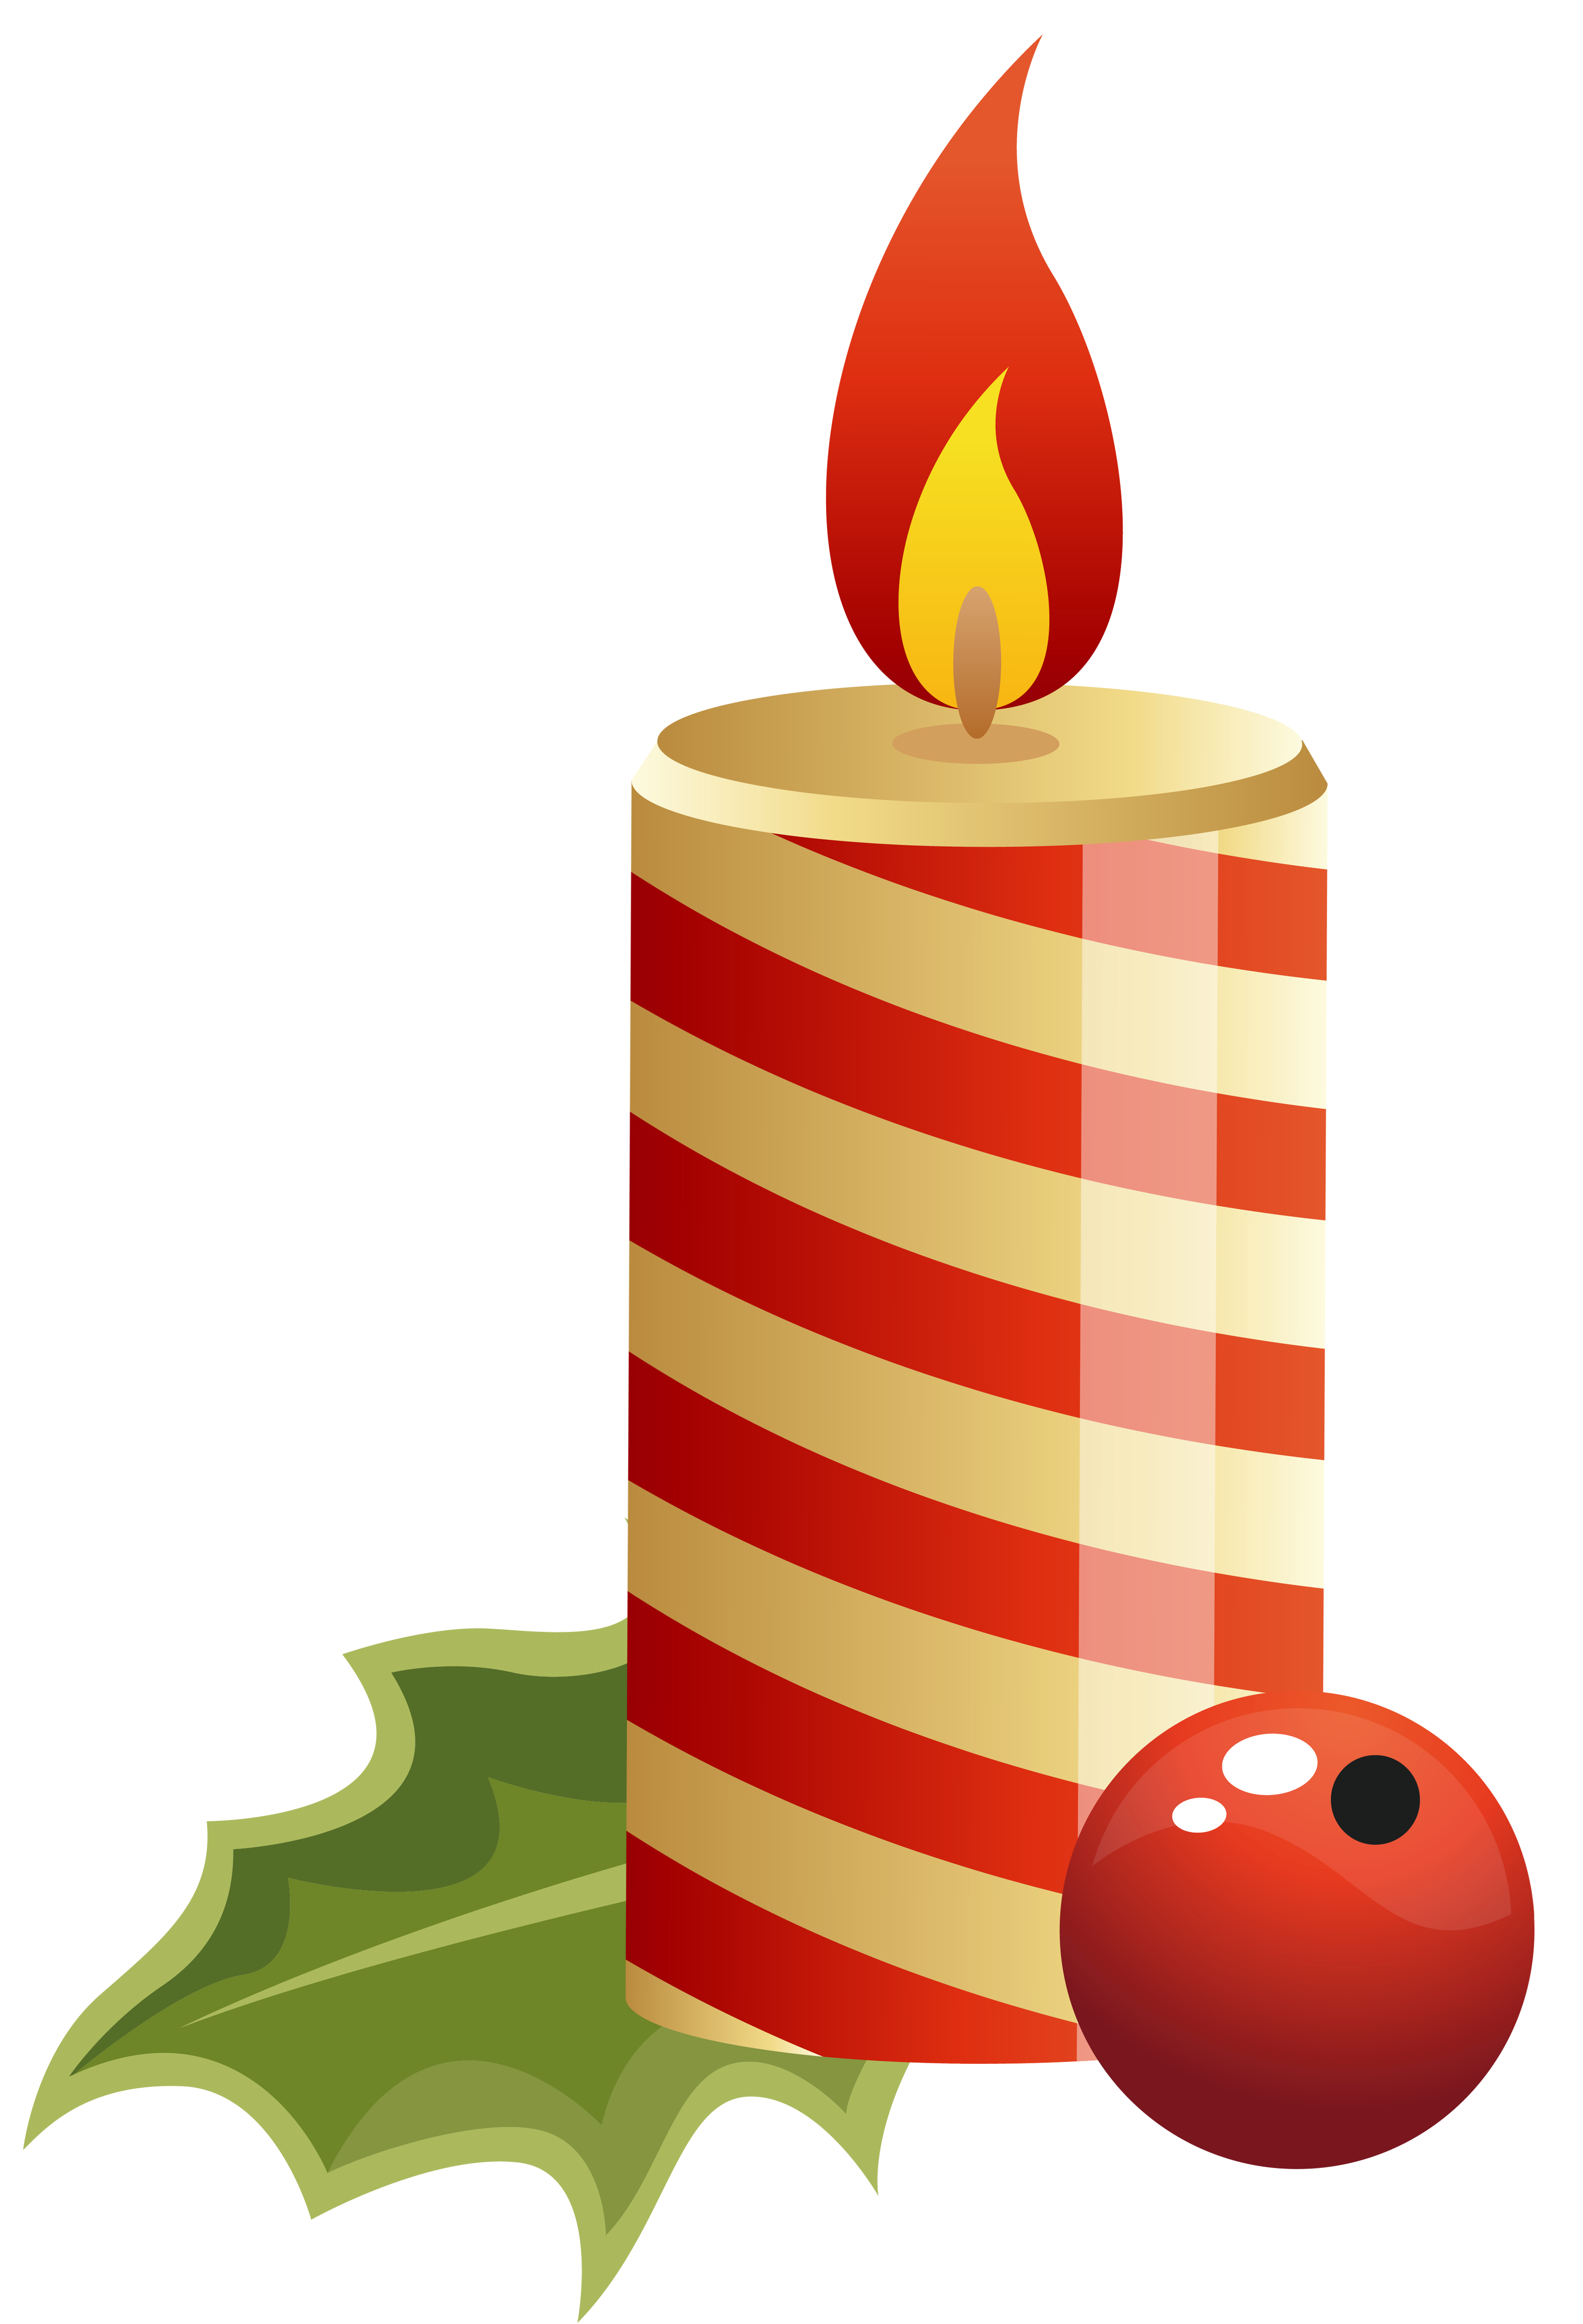 Christmas beach clipart clip art library library Candle Clipart at GetDrawings.com | Free for personal use Candle ... clip art library library